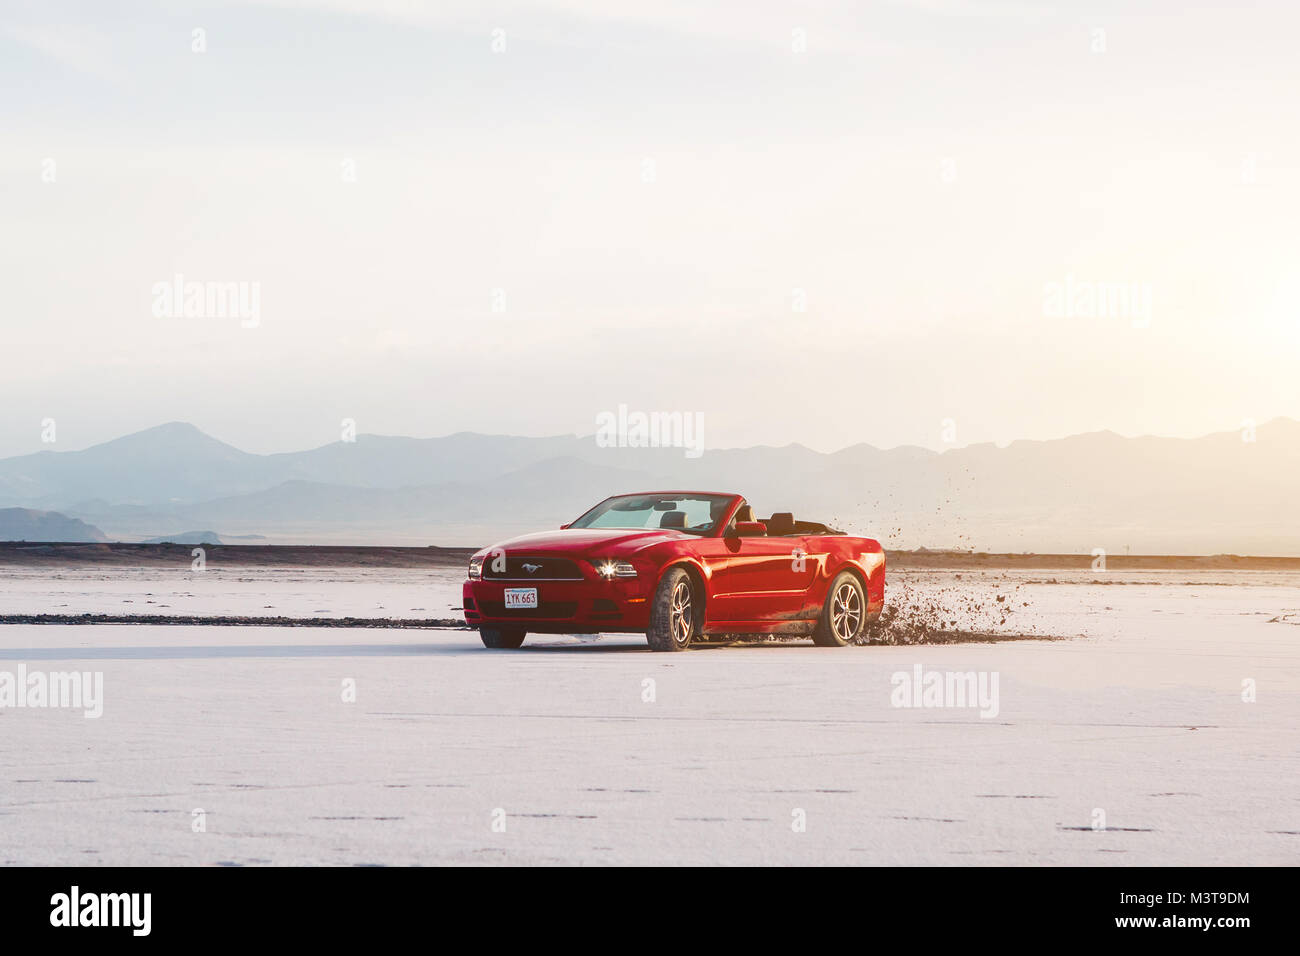 BONNEVILLE ,UTAH, USA JUNE 4, 2015: Photo of a Ford Mustang Convertible 2012 version at Bonneville Salt Flats,Utah,USA. Stock Photo